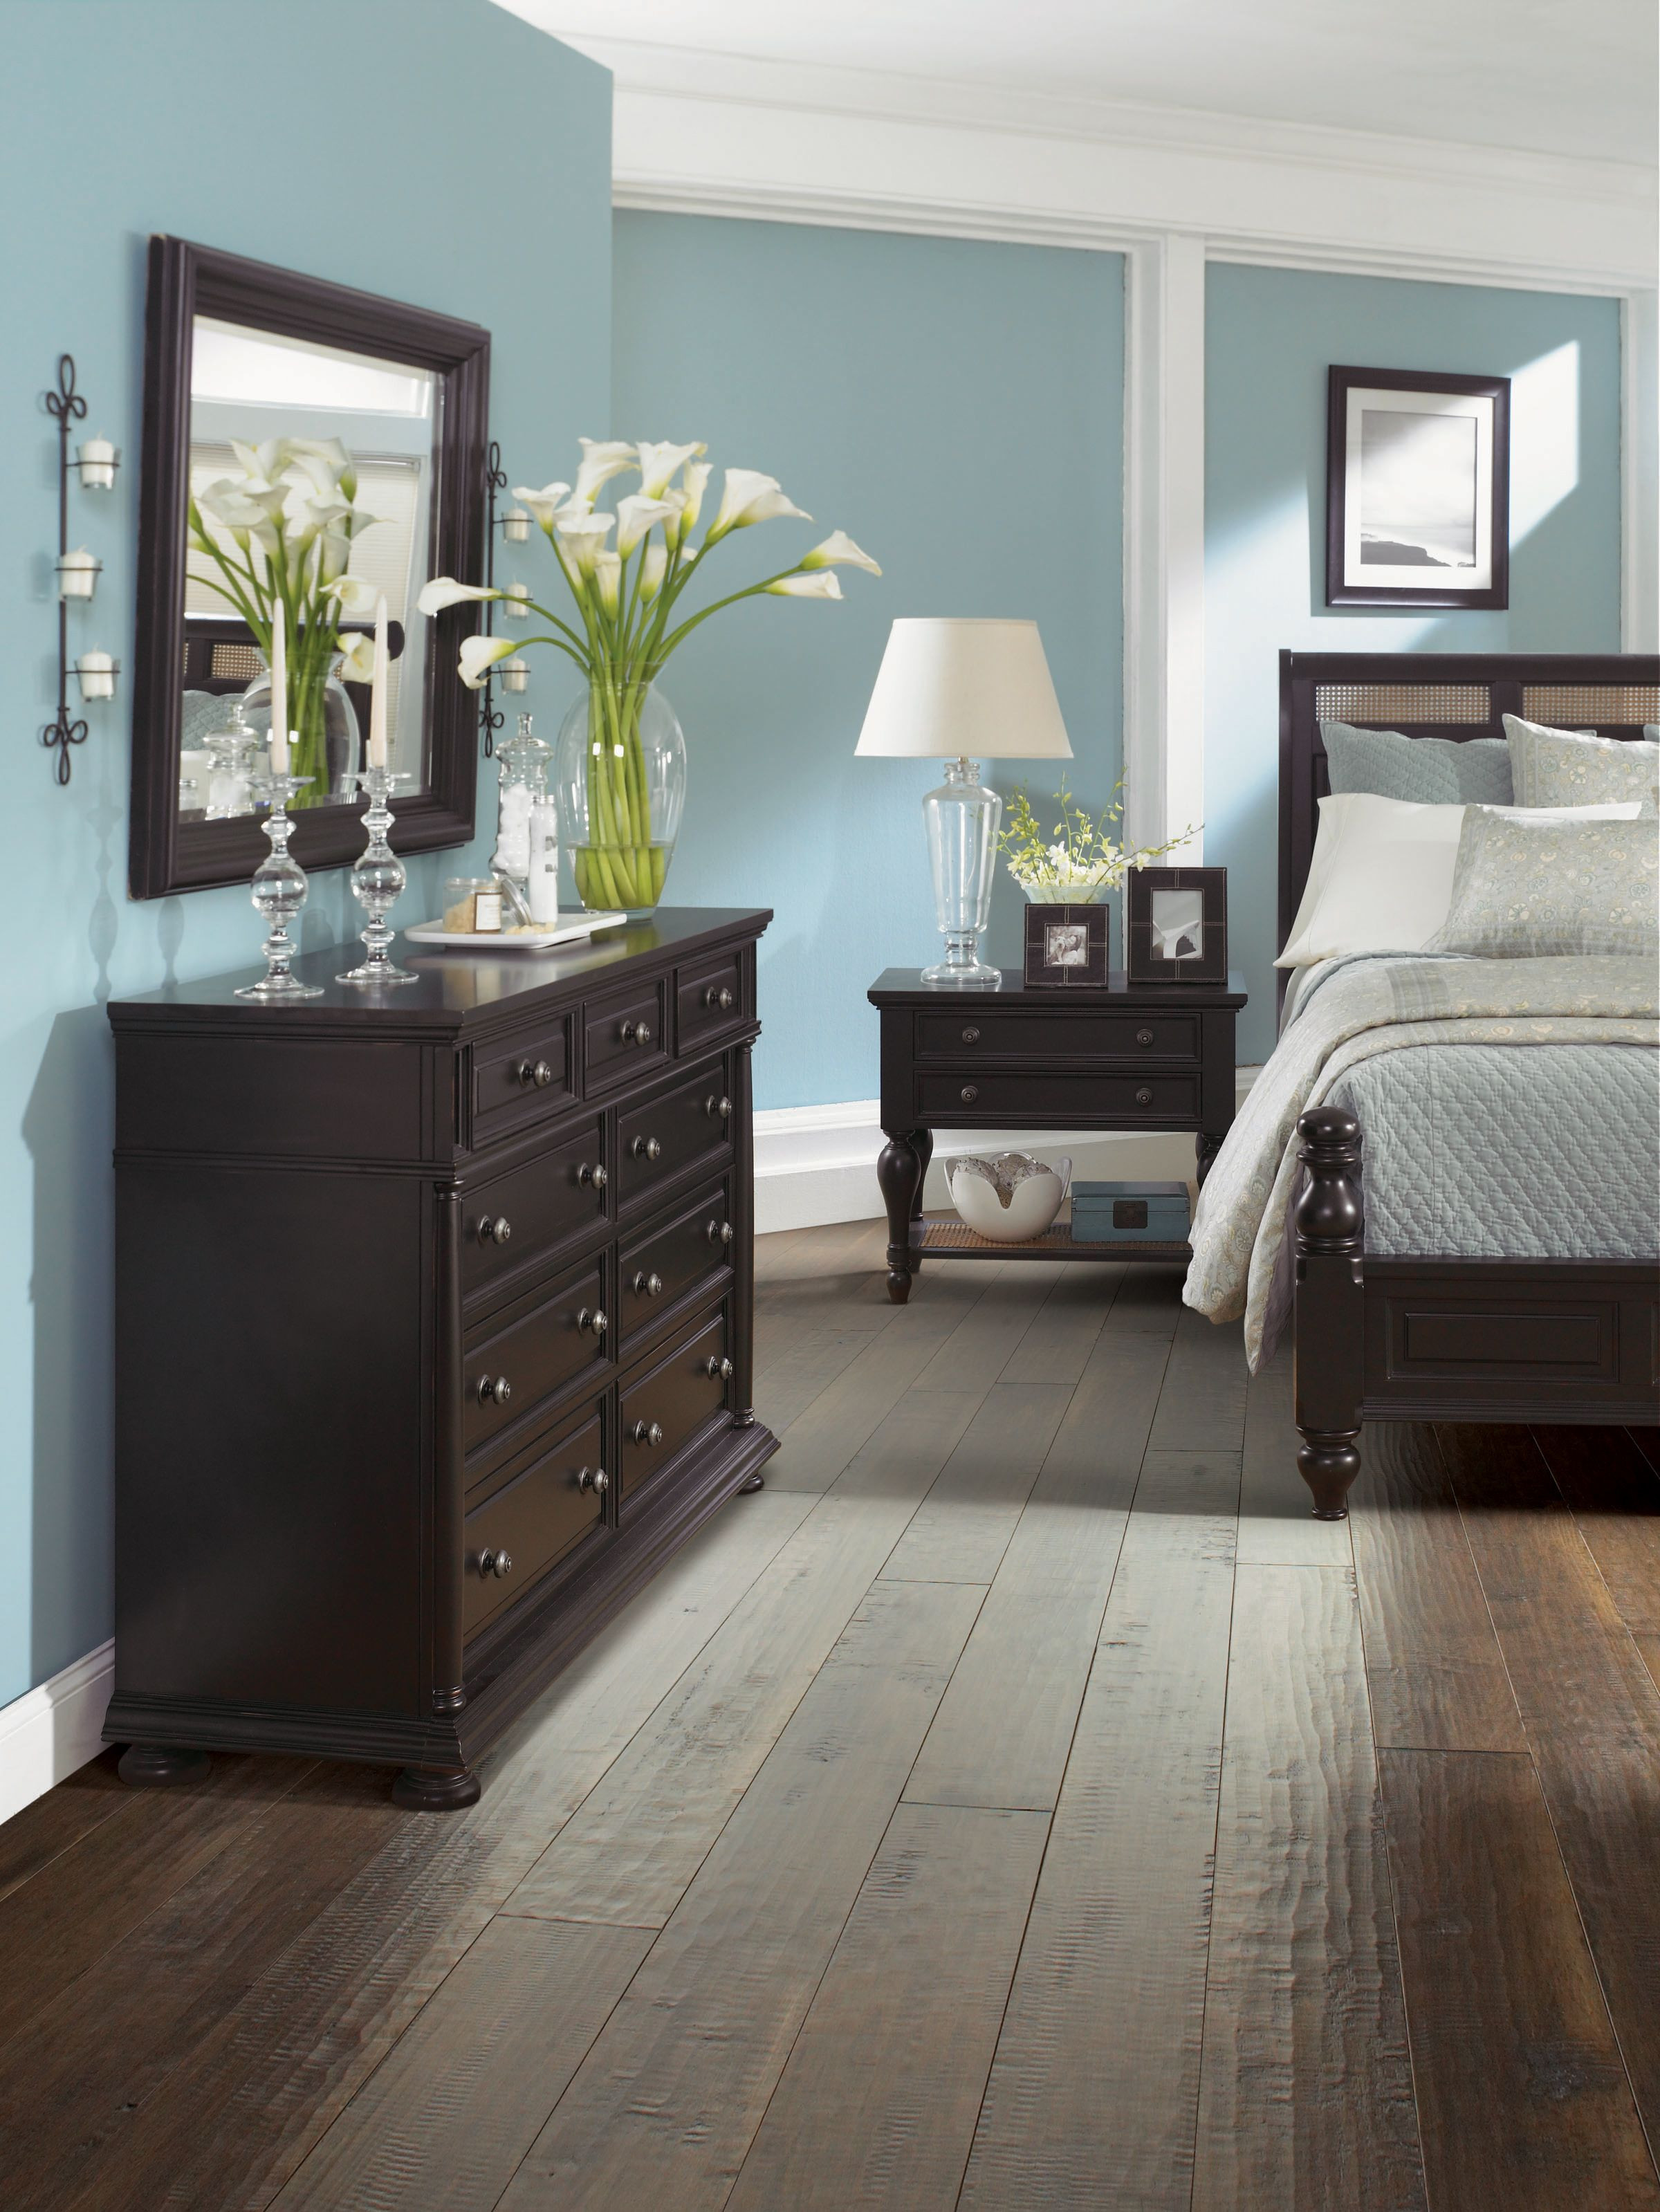 most popular hardwood floor colors 2015 of 30 wood flooring ideas and trends for your stunning bedroom with regard to my challenge is the furniture bc the walls have to stay white so ii¸ guess the furniture all has to match